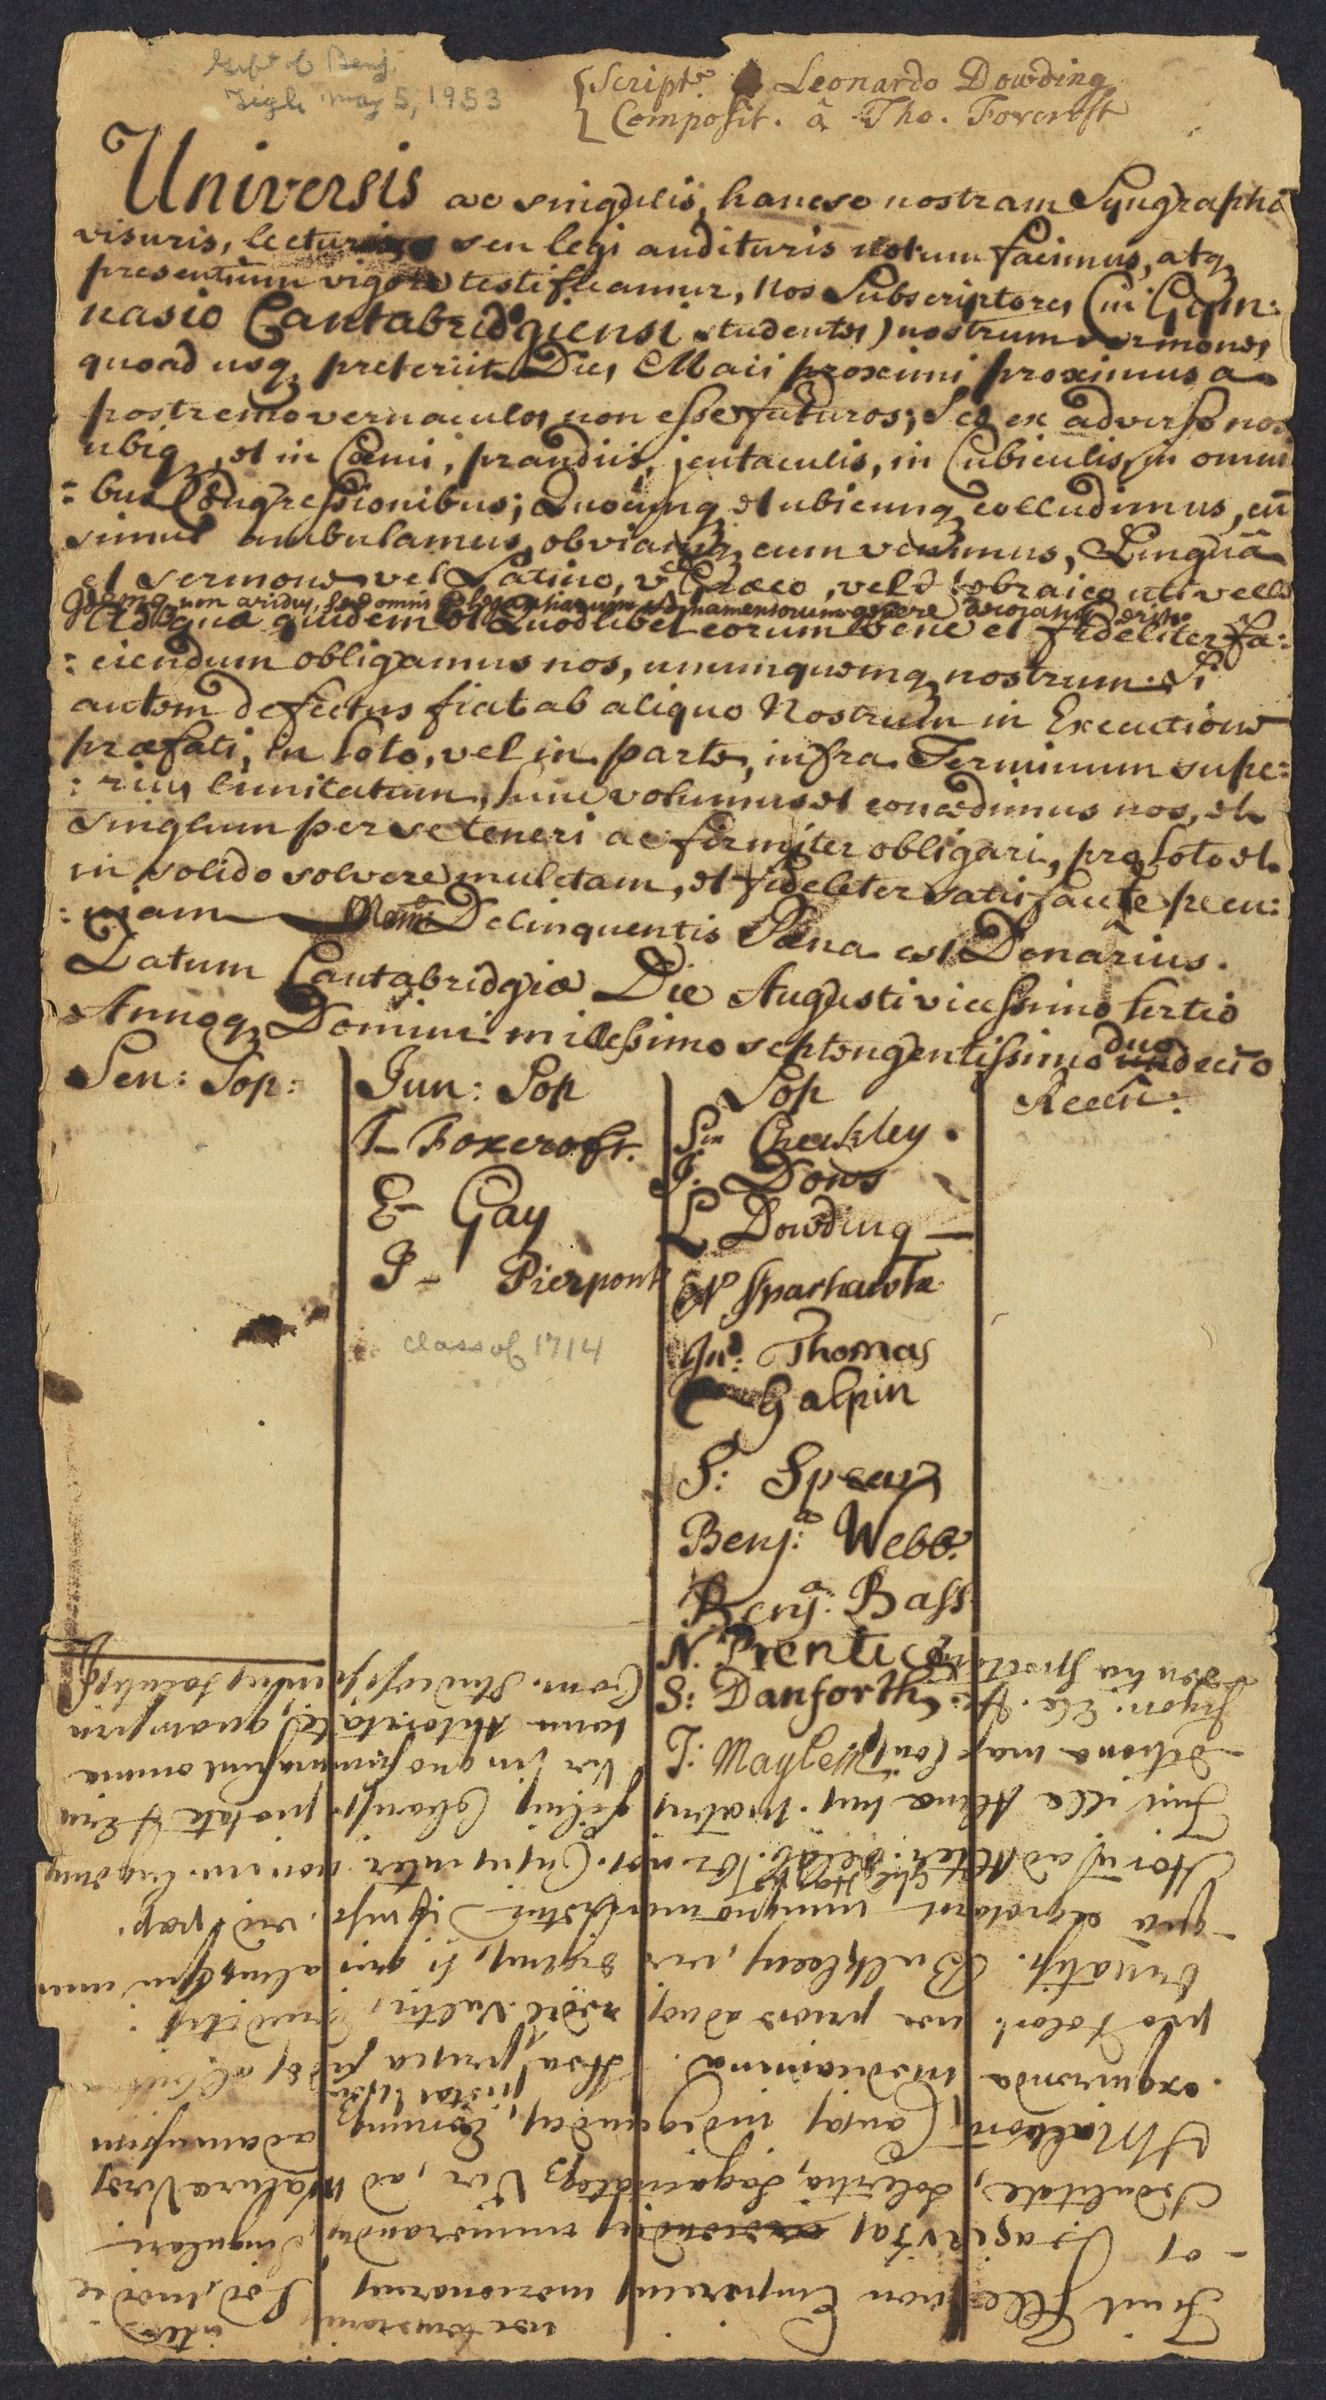 Declaration signed by Harvard students to not speak in the vernacular for one year, 1712 August 23